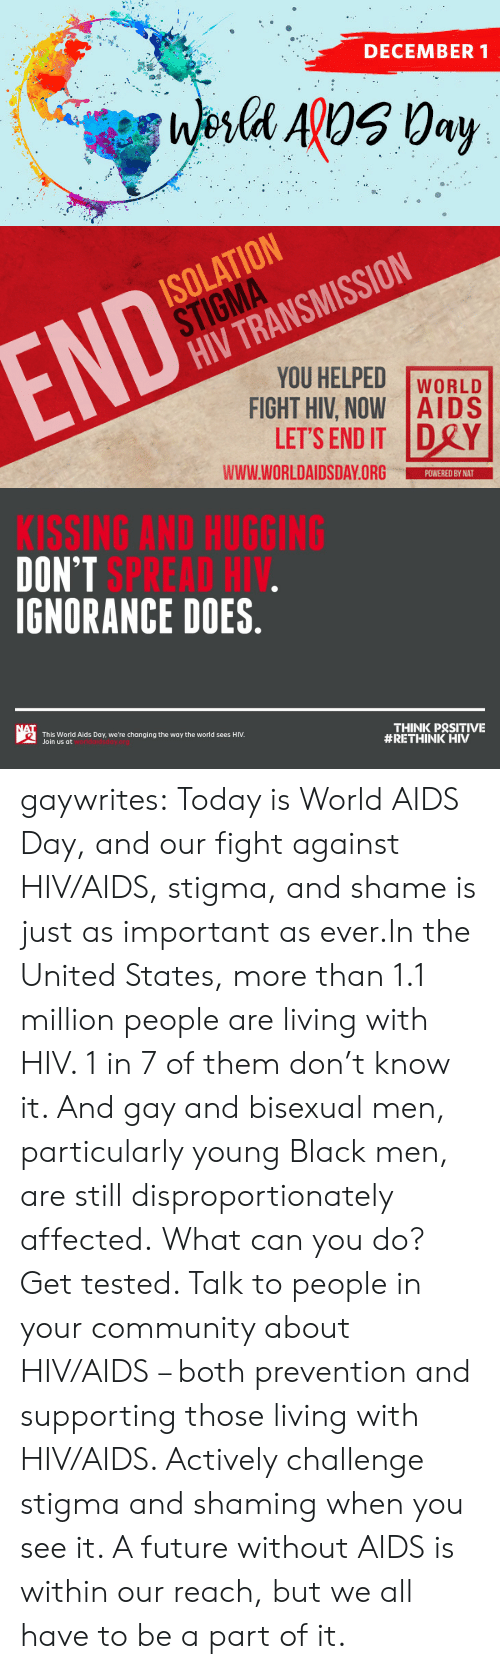 Community, Future, and Target: DECEMBER 1  Wesla ApOS 0ay   ISOLATION  STIGMA  HIV TRANSMISSION  END  YOU HELPED  FIGHT HIV, NOW AIDS  LET'S END IT DRY  WORLD  www.WORLDAIDSDAY.ORG  POWERED BY NAT   KISSING AND HUGGING  DON'T SPREAD HIV.  IGNORANCE DOES.  NAT  THINK PRSITIVE  #RETHINK HIV  This World Aids Day, we're changing the way the world sees HIV.  Join us at gaywrites:  Today is World AIDS Day, and our fight against HIV/AIDS, stigma, and shame is just as important as ever.In the United States, more than 1.1 million people are living with HIV. 1 in 7 of them don't know it. And gay and bisexual men, particularly young Black men, are still disproportionately affected. What can you do? Get tested. Talk to people in your community about HIV/AIDS – both prevention and supporting those living with HIV/AIDS. Actively challenge stigma and shaming when you see it. A future without AIDS is within our reach, but we all have to be a part of it.